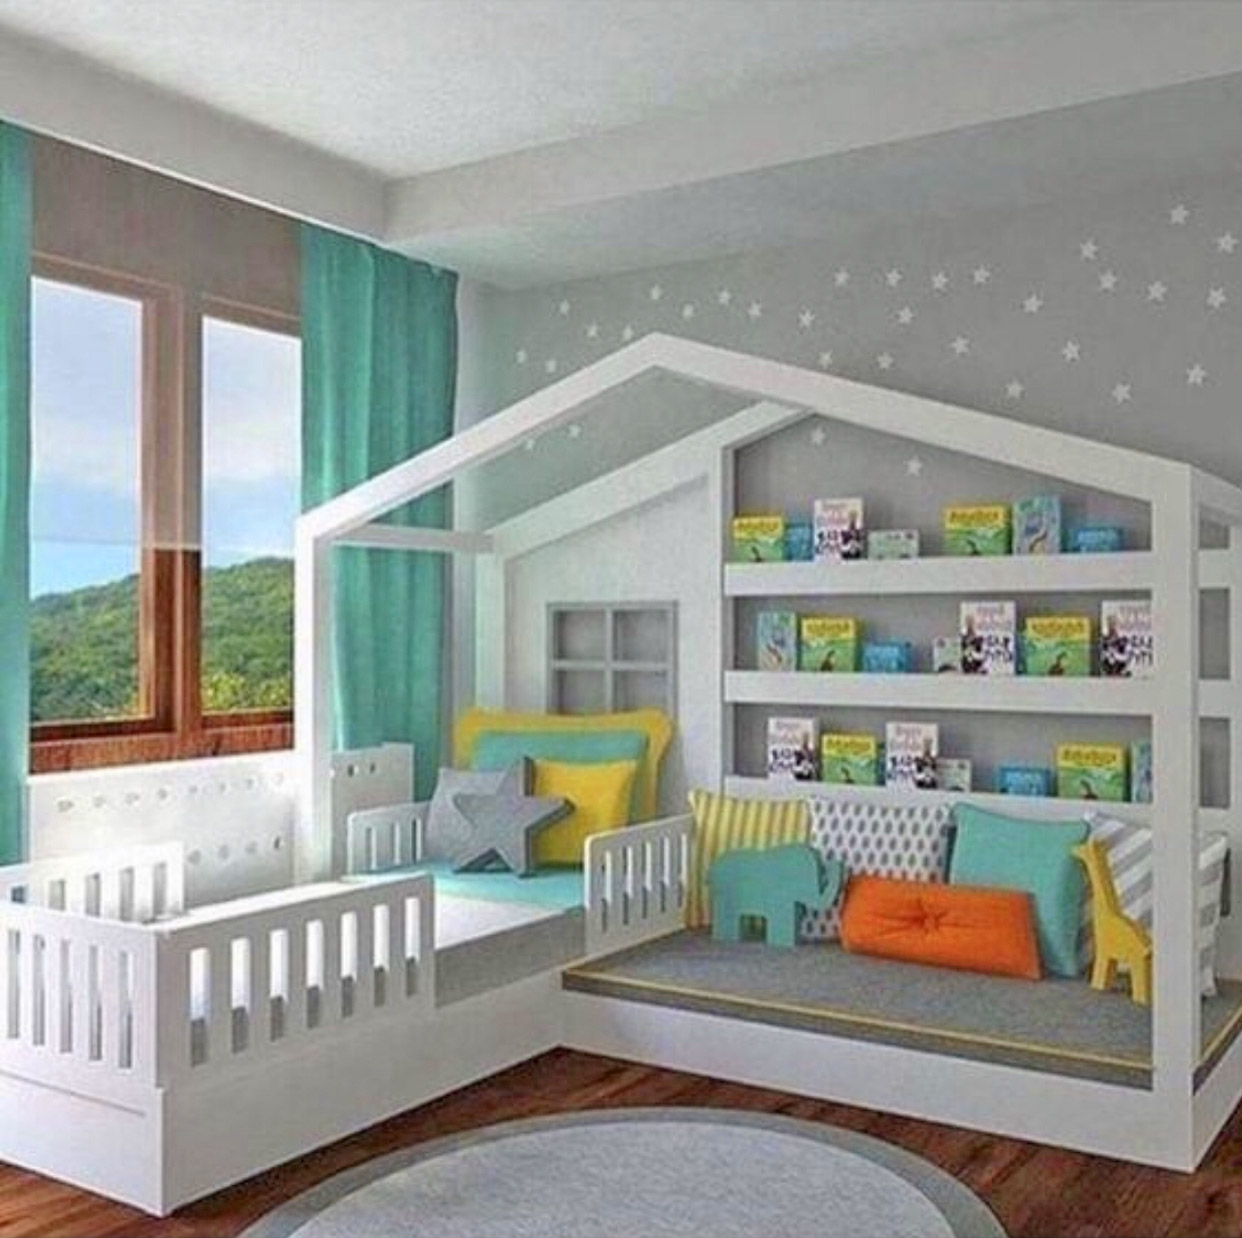 Kids Montessori Bed Has a Bed and Reading Nook In One - Kids reading nook bed frame